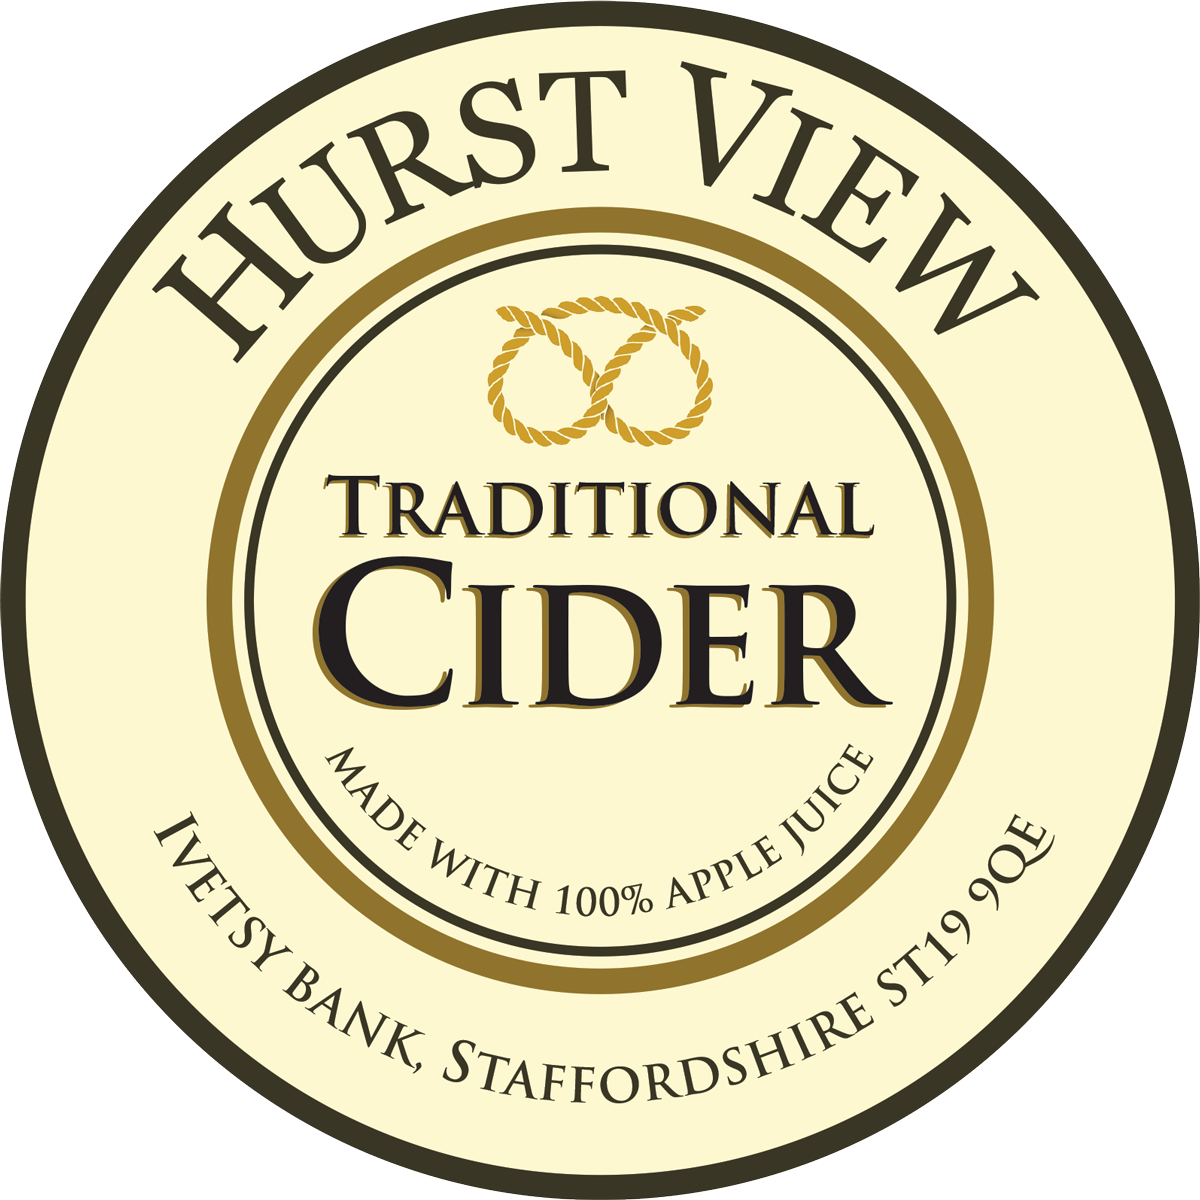 Hurst View Cider 5 Pint Pouch